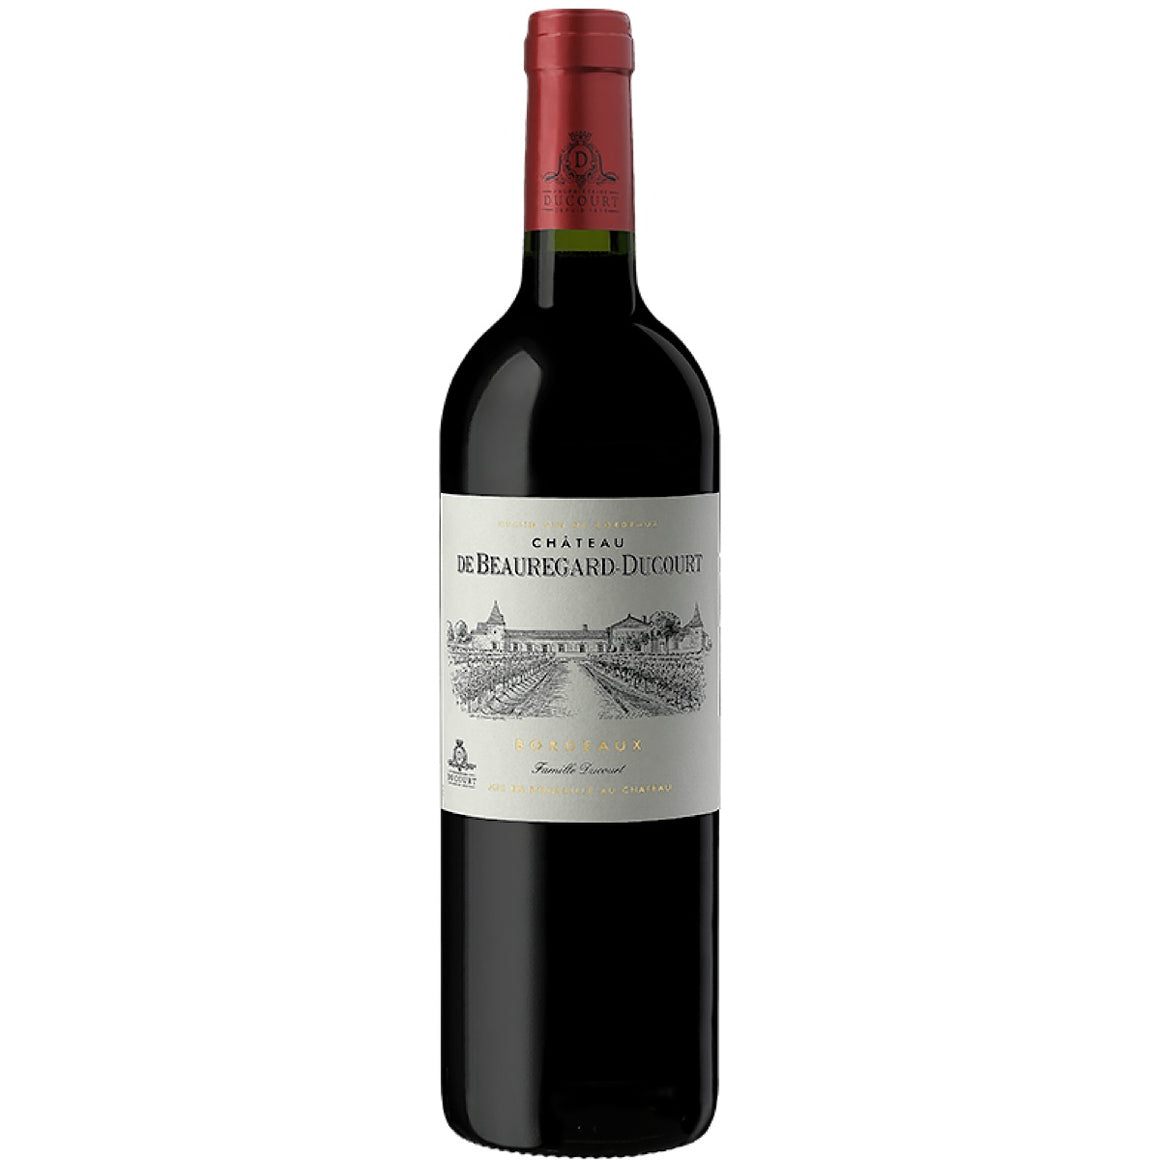 Château Beauregard-Ducourt, Bordeaux rouge, 12 Bottle Case 75cl